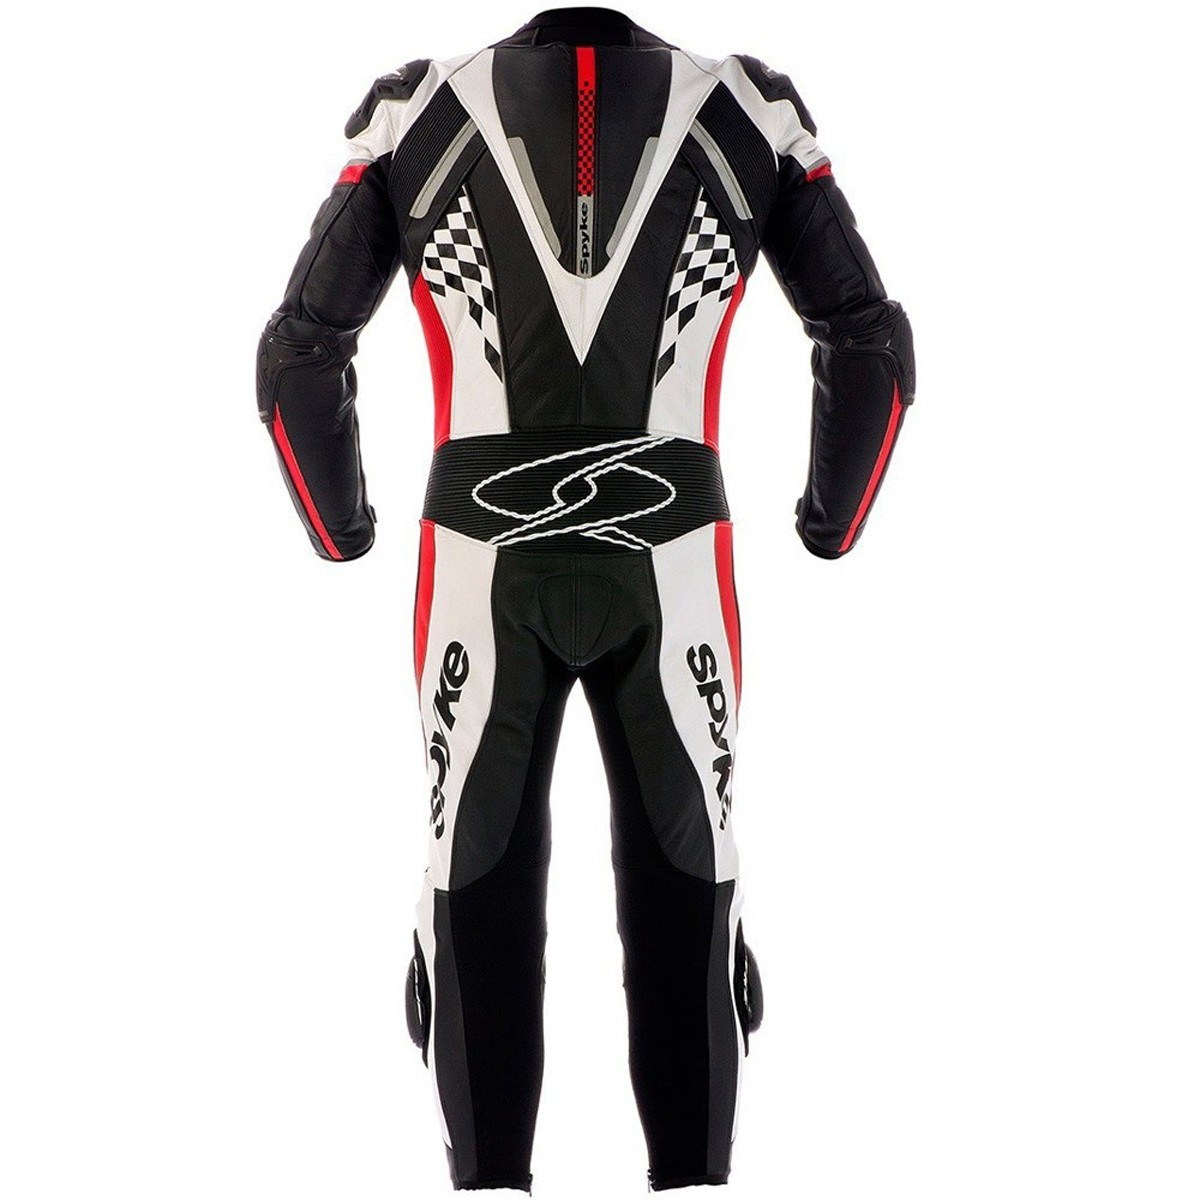 4Race Rac Motorcycle Leather Suit